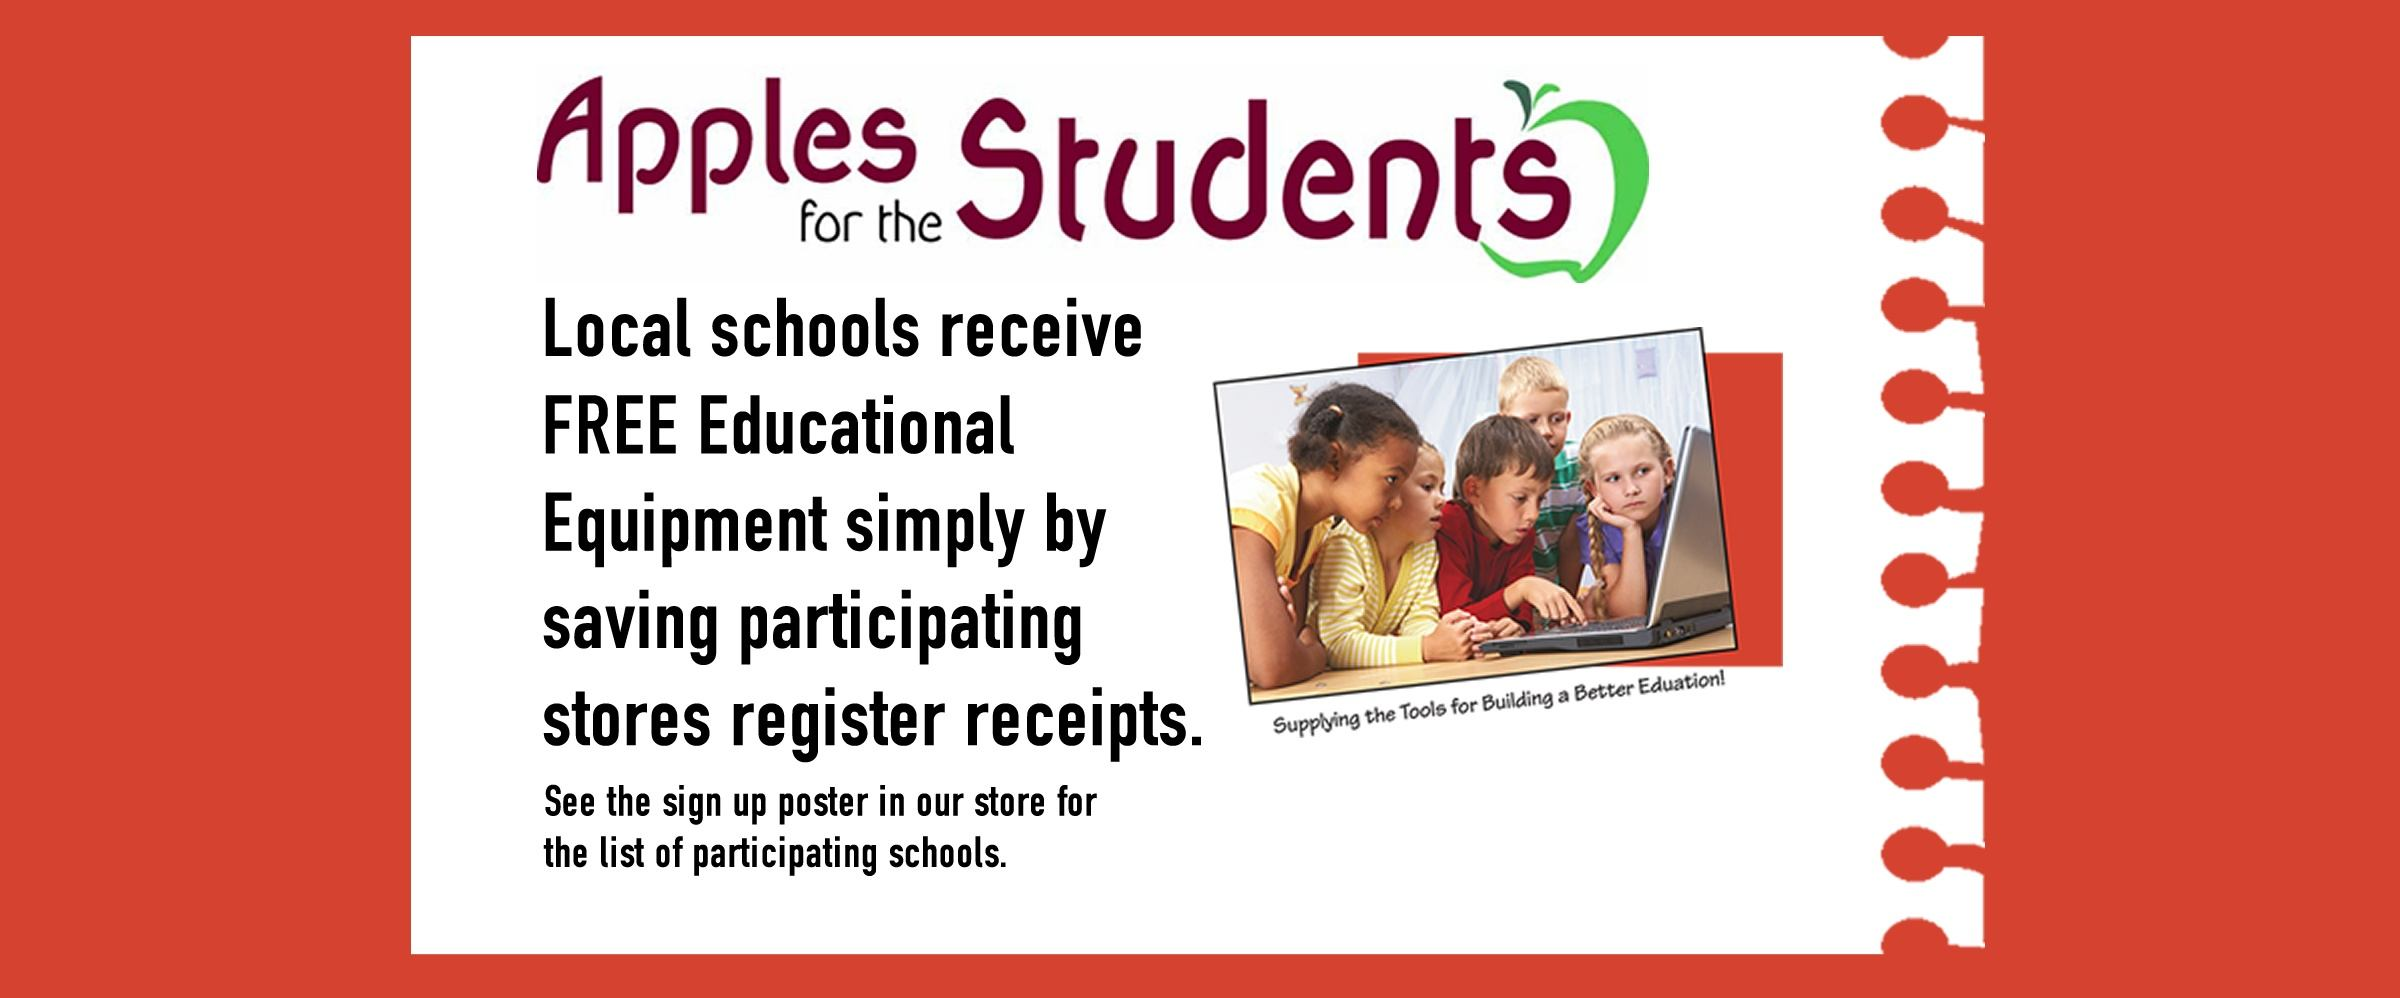 Apples for the Students: Local schools receive FREE Educational equipment simply by saving participating stores register receipts. See the sign up poster in our store for the list of participating schools.